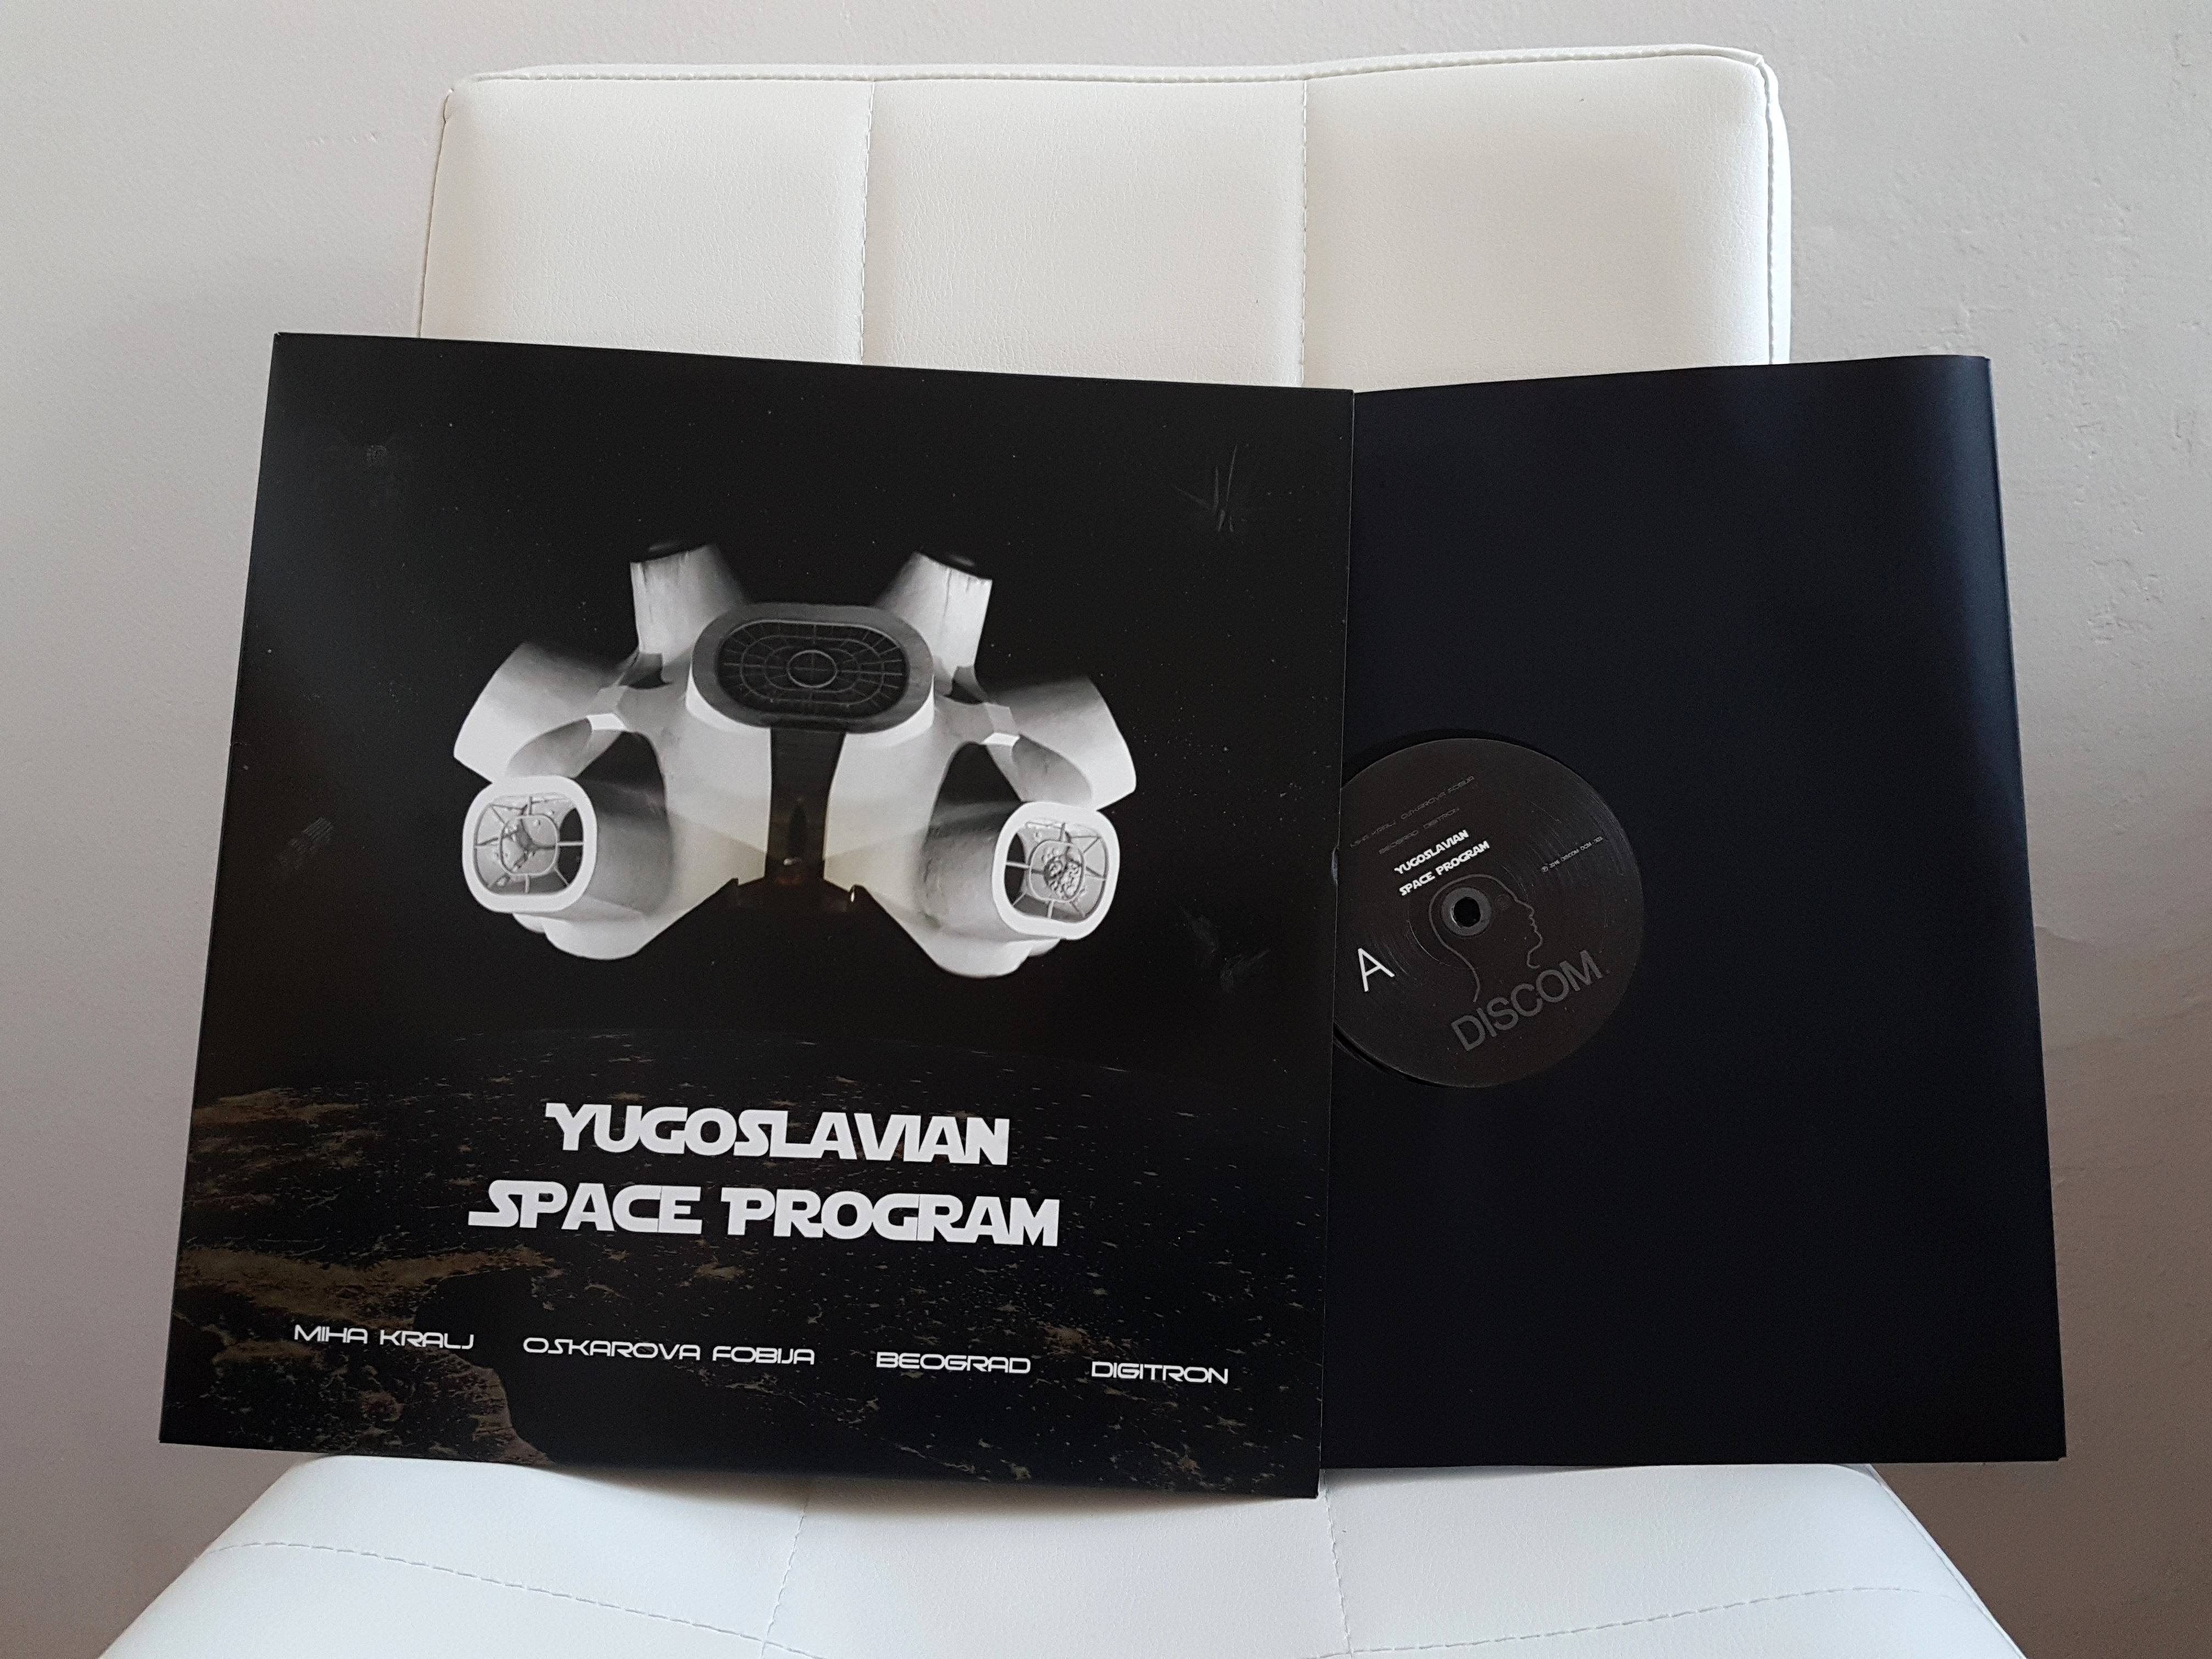 Yugoslavian Space Program – An Electronic Compilation Gem, or More if You Want